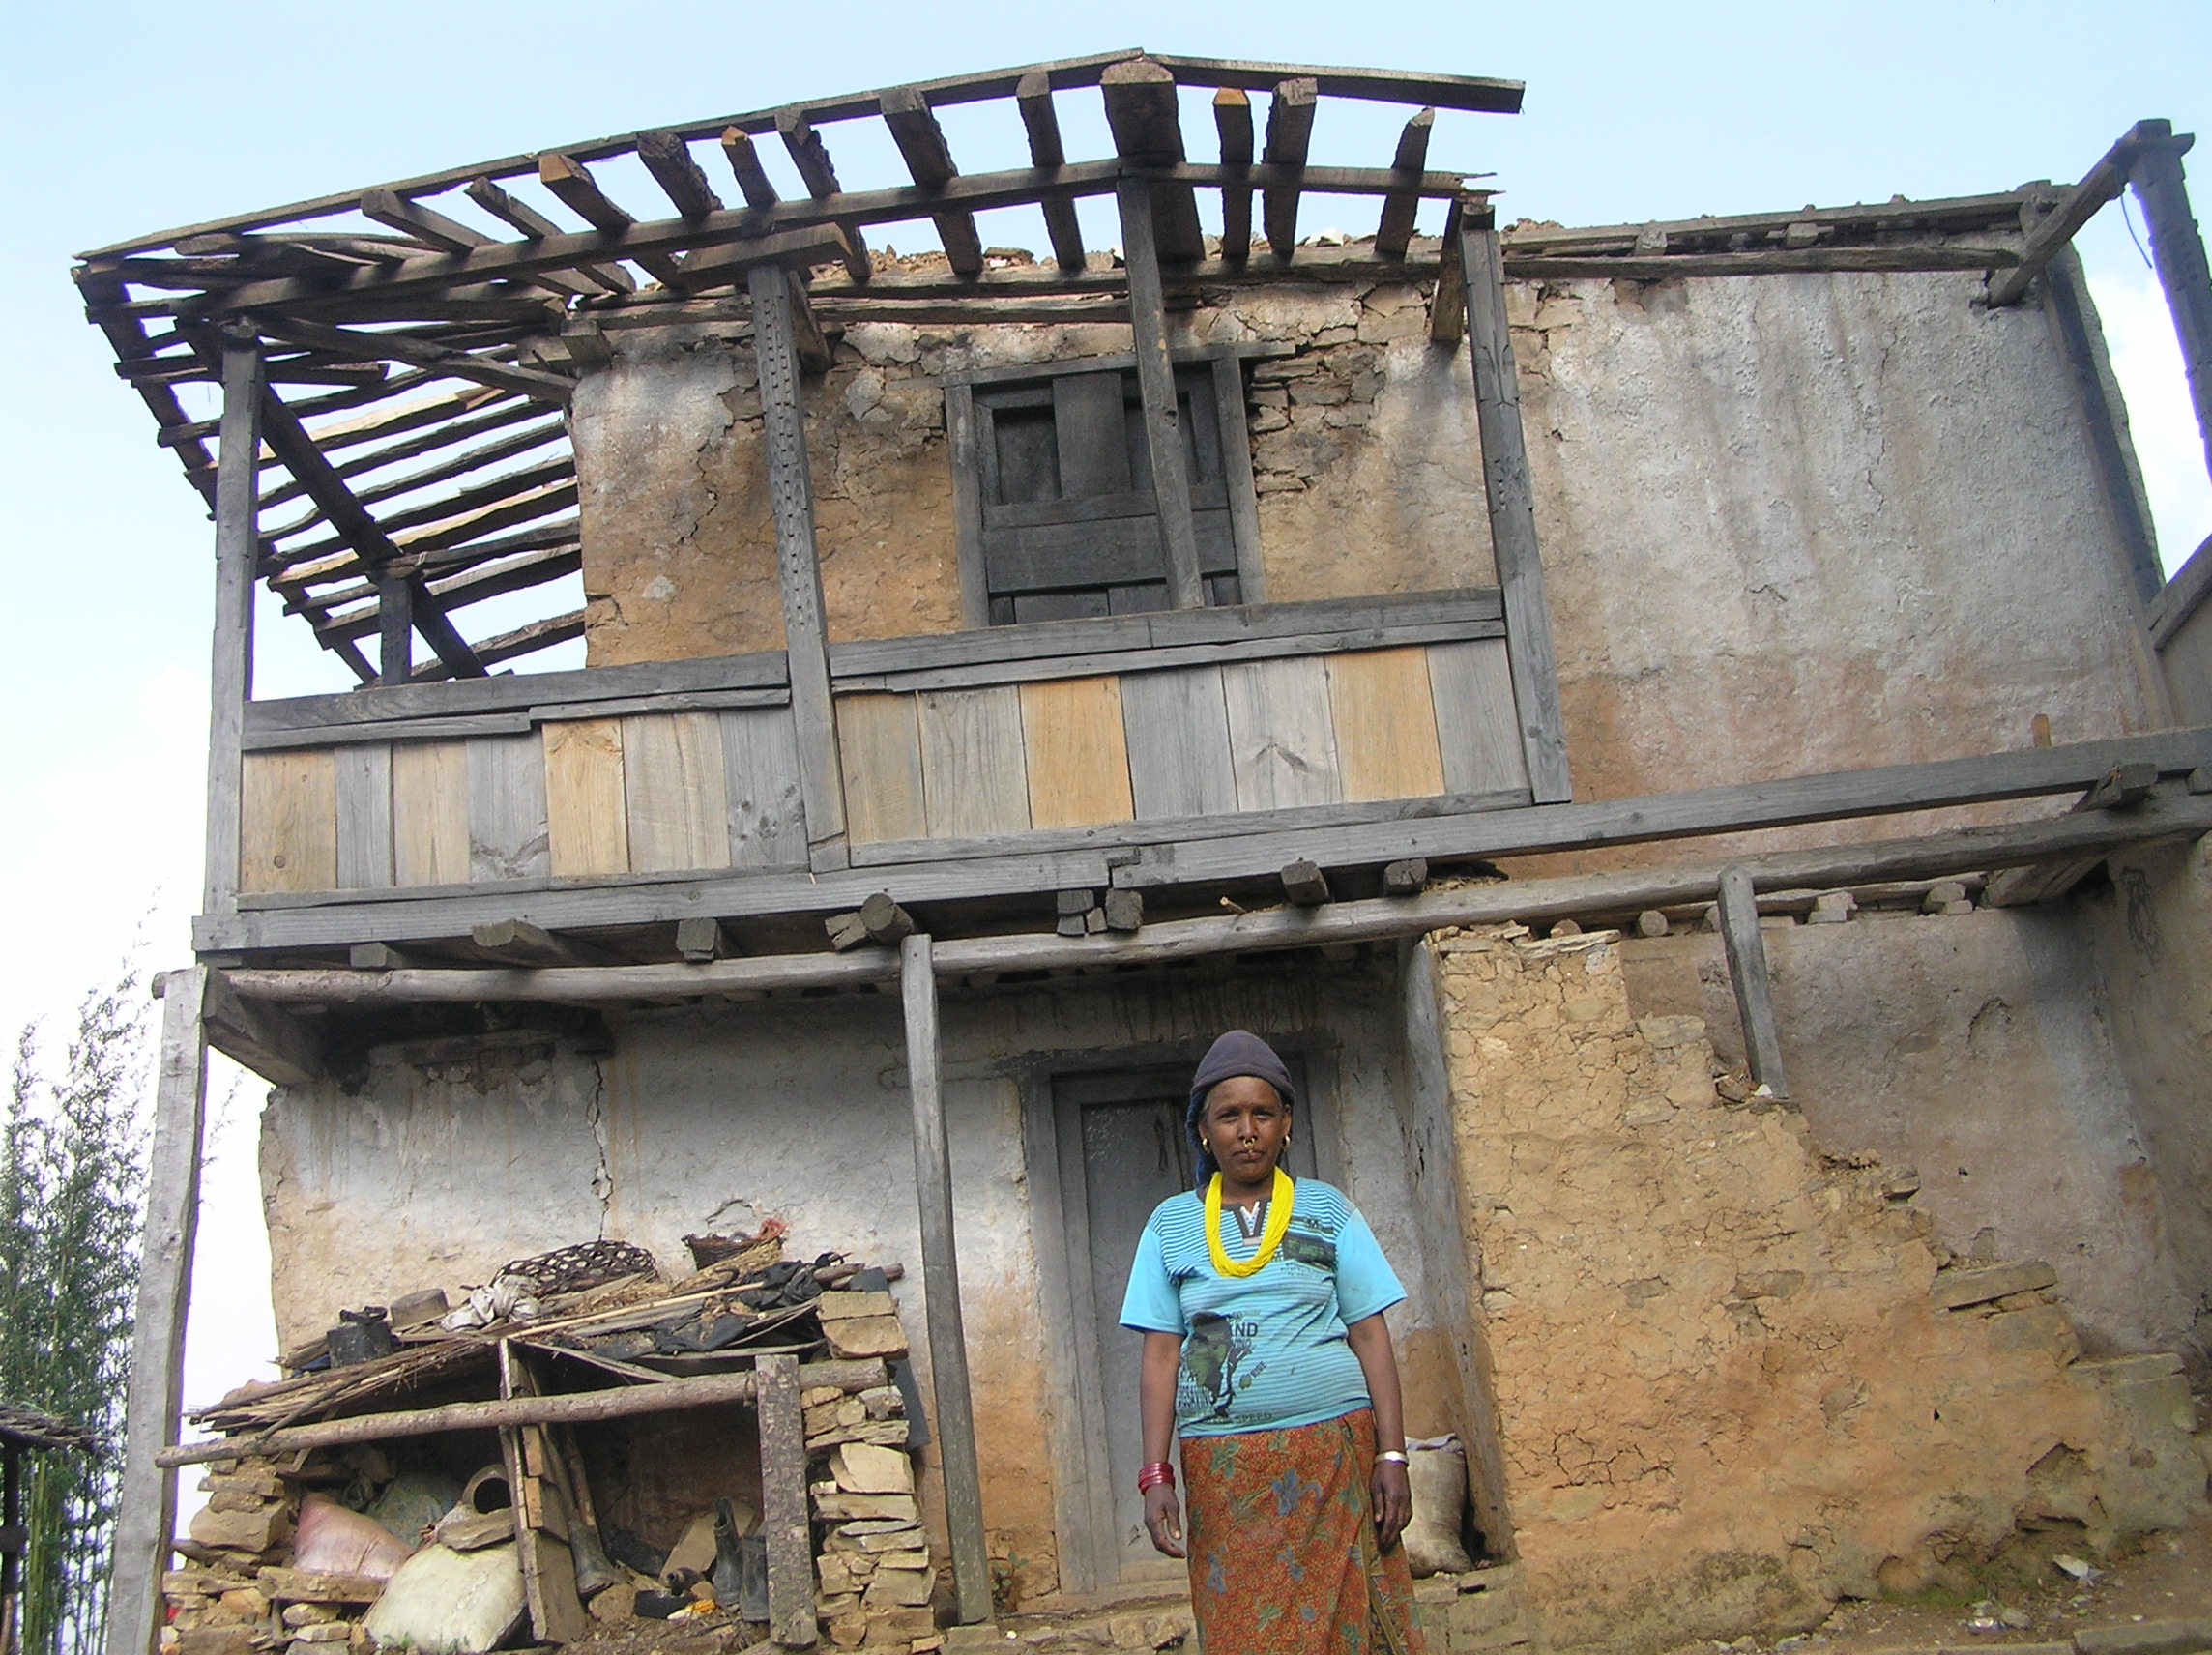 A-Dalit-lady-stand-infront-of-her-damaged-house-by-April-25-earthquake-at-Phalate-Okhaldhunga-Nepal